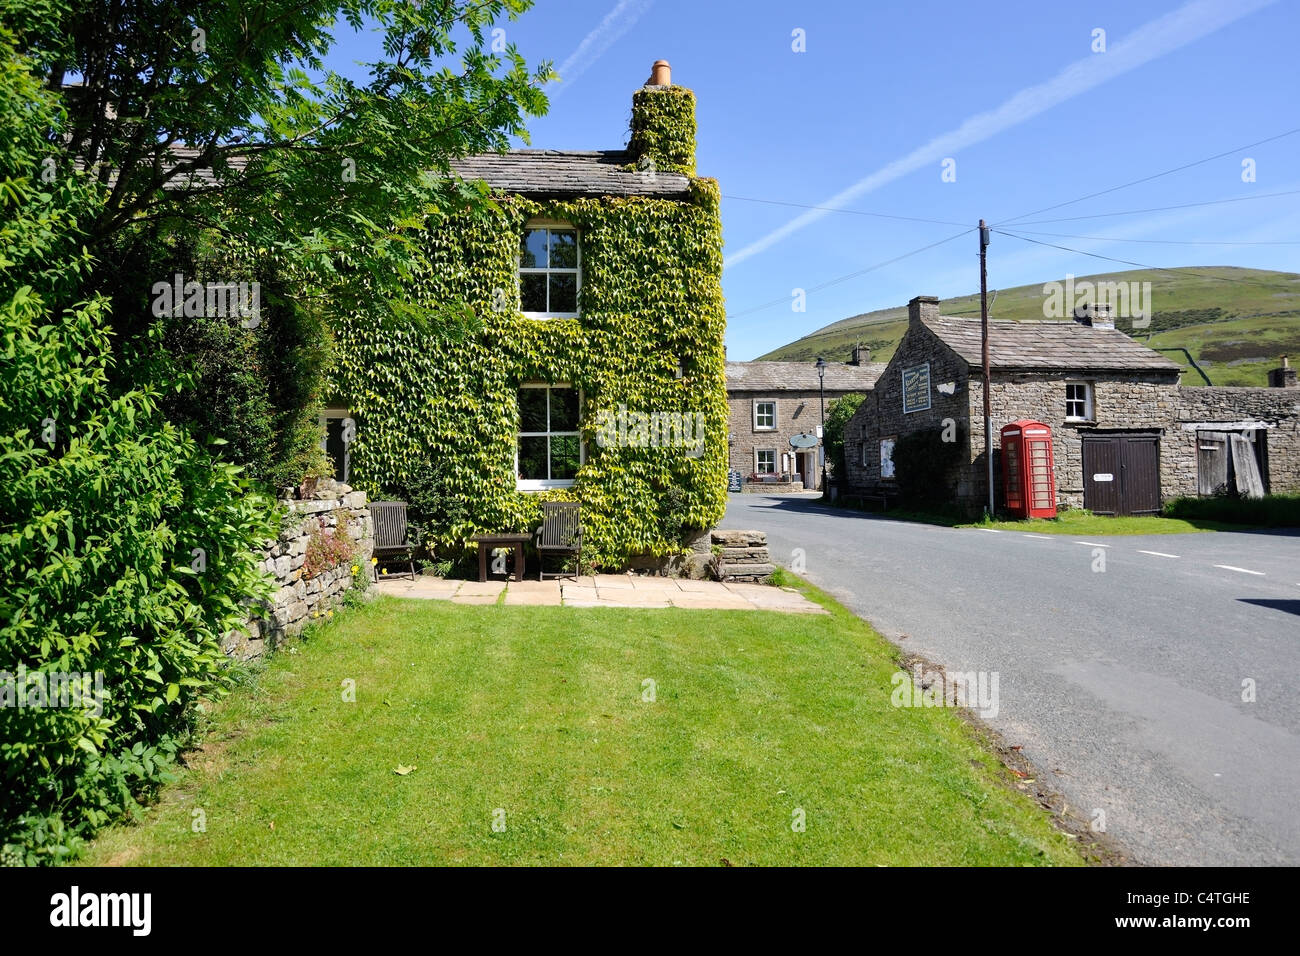 Historic red telephone box in the village of  Thwaite, Swaledale, Yorkshire, England - Stock Image